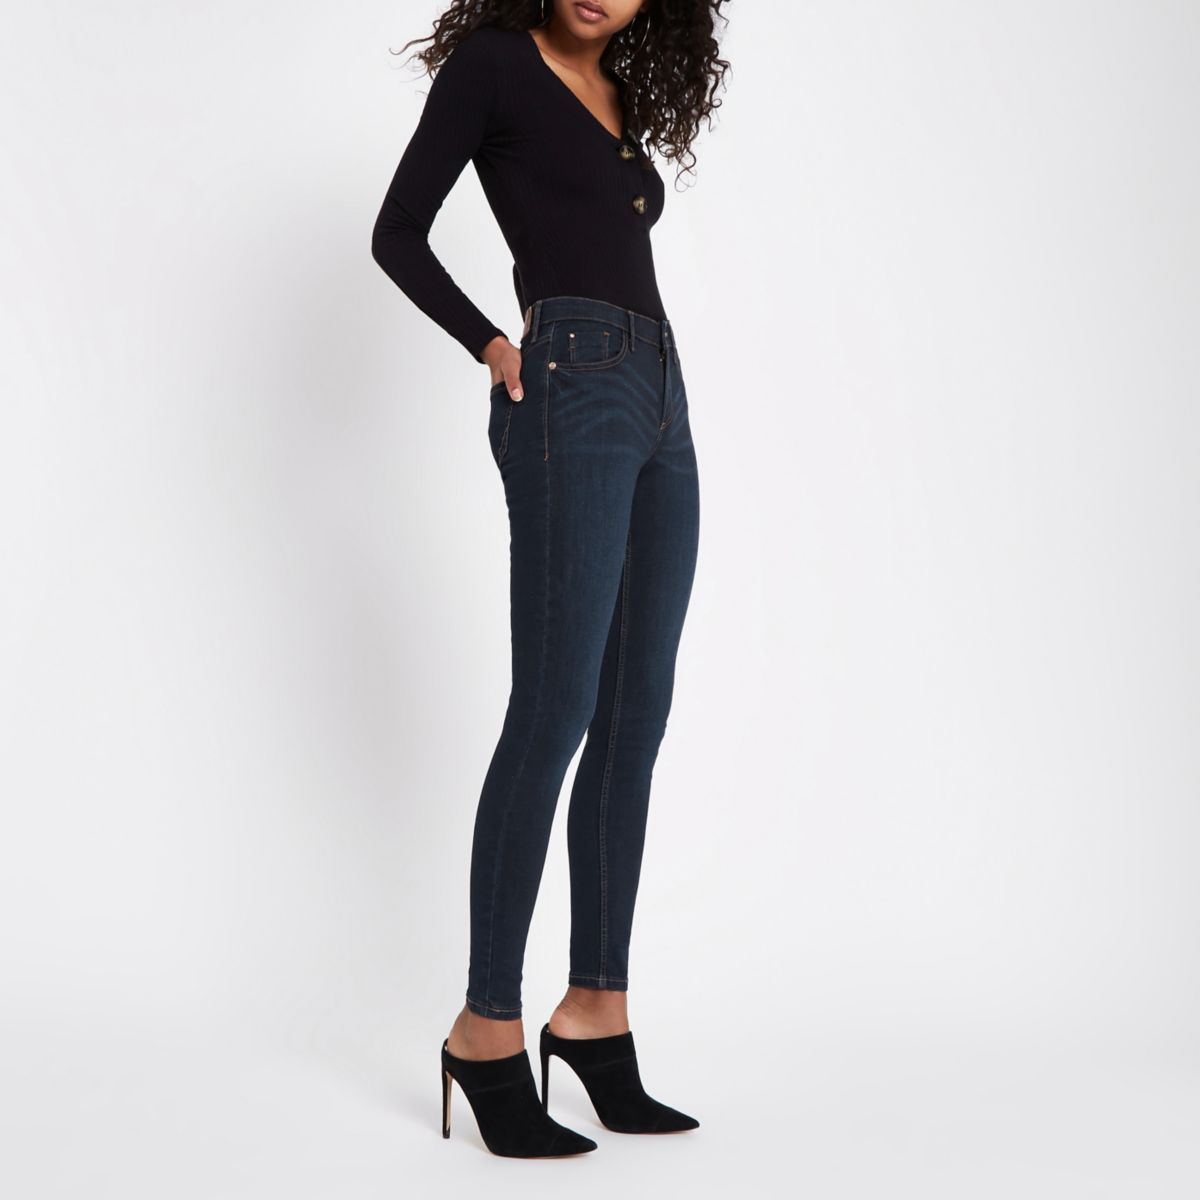 Free shipping and returns on skinny jeans for women at ketauan.ga Shop for skinny jeans by wash, rise, waist size, and more from brands like Articles of Society, Topshop, AG, Madewell, and more. Free shipping and returns.